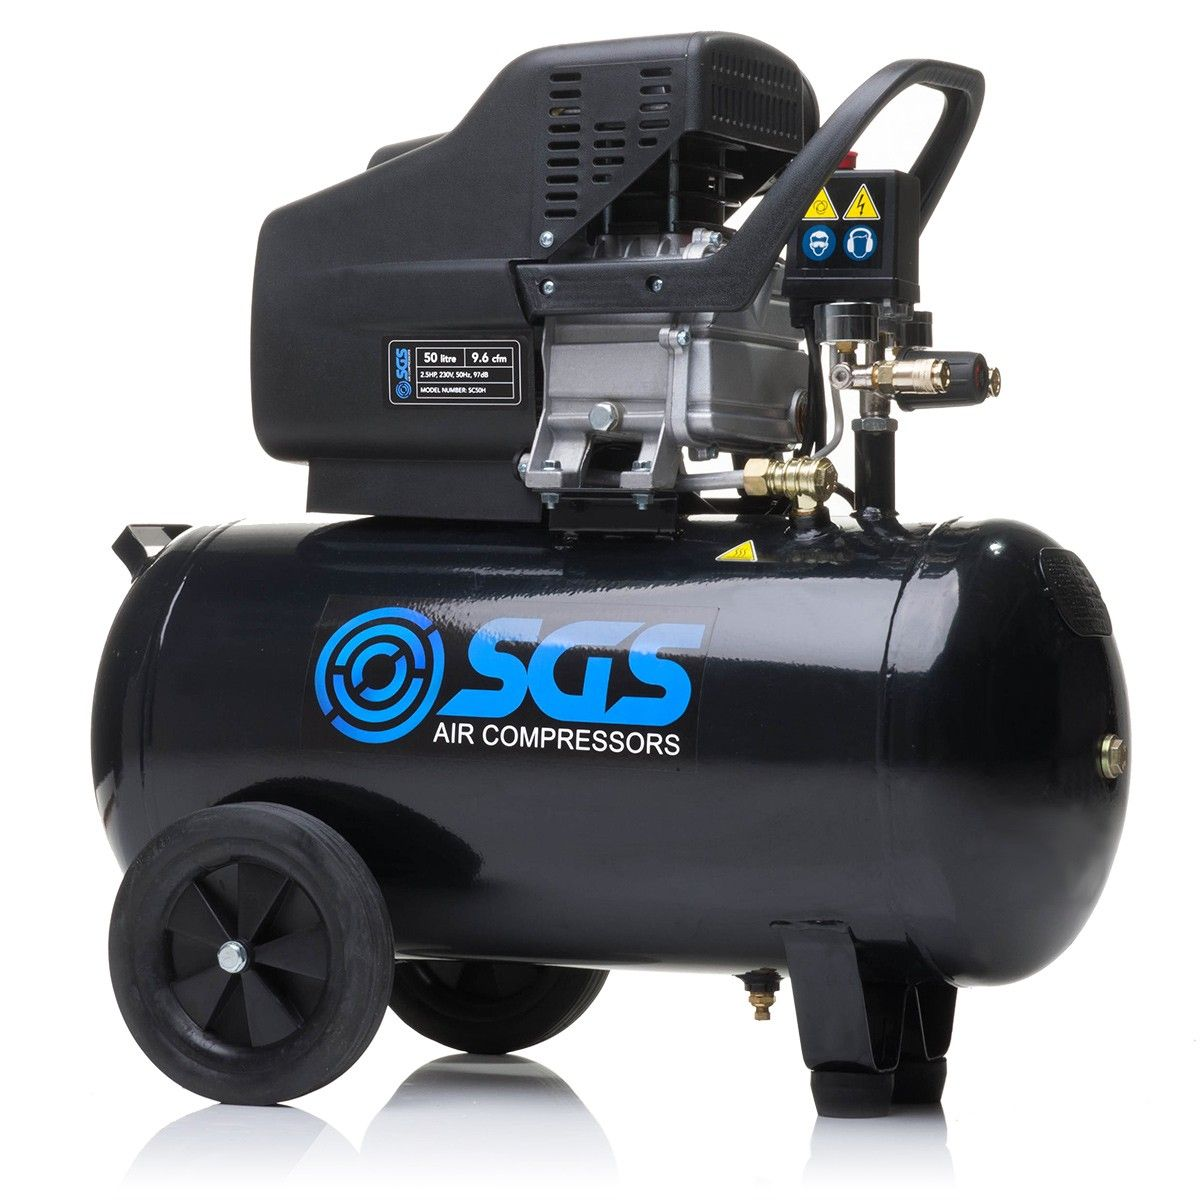 SGS 50 Litre Direct Drive Air Compressor 9.6CFM, 2.5HP